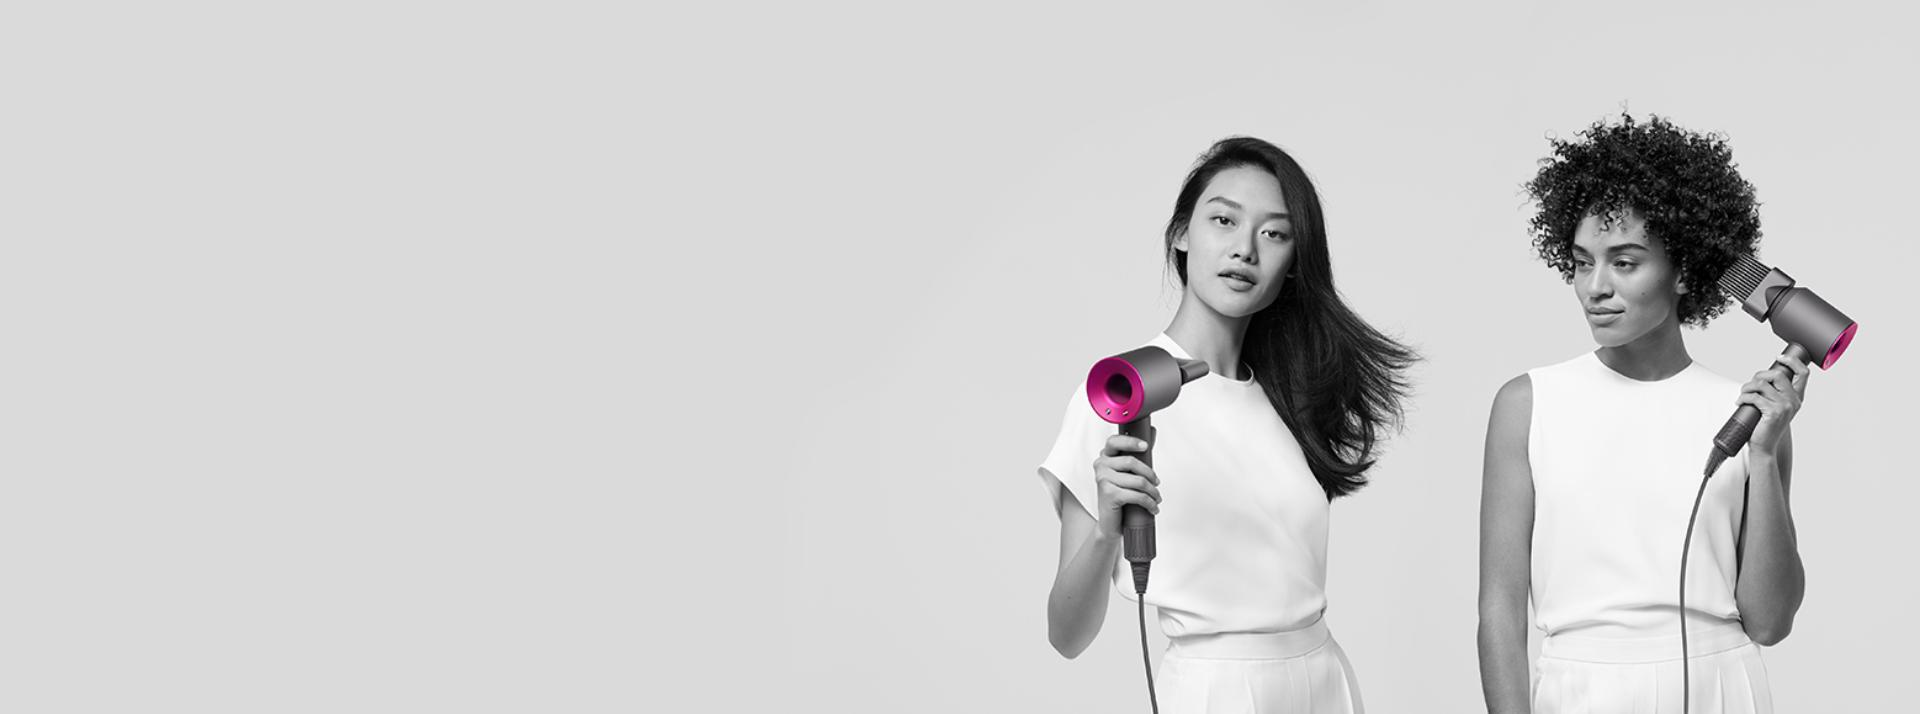 Explore the Dyson Supersonic™ hair dryer